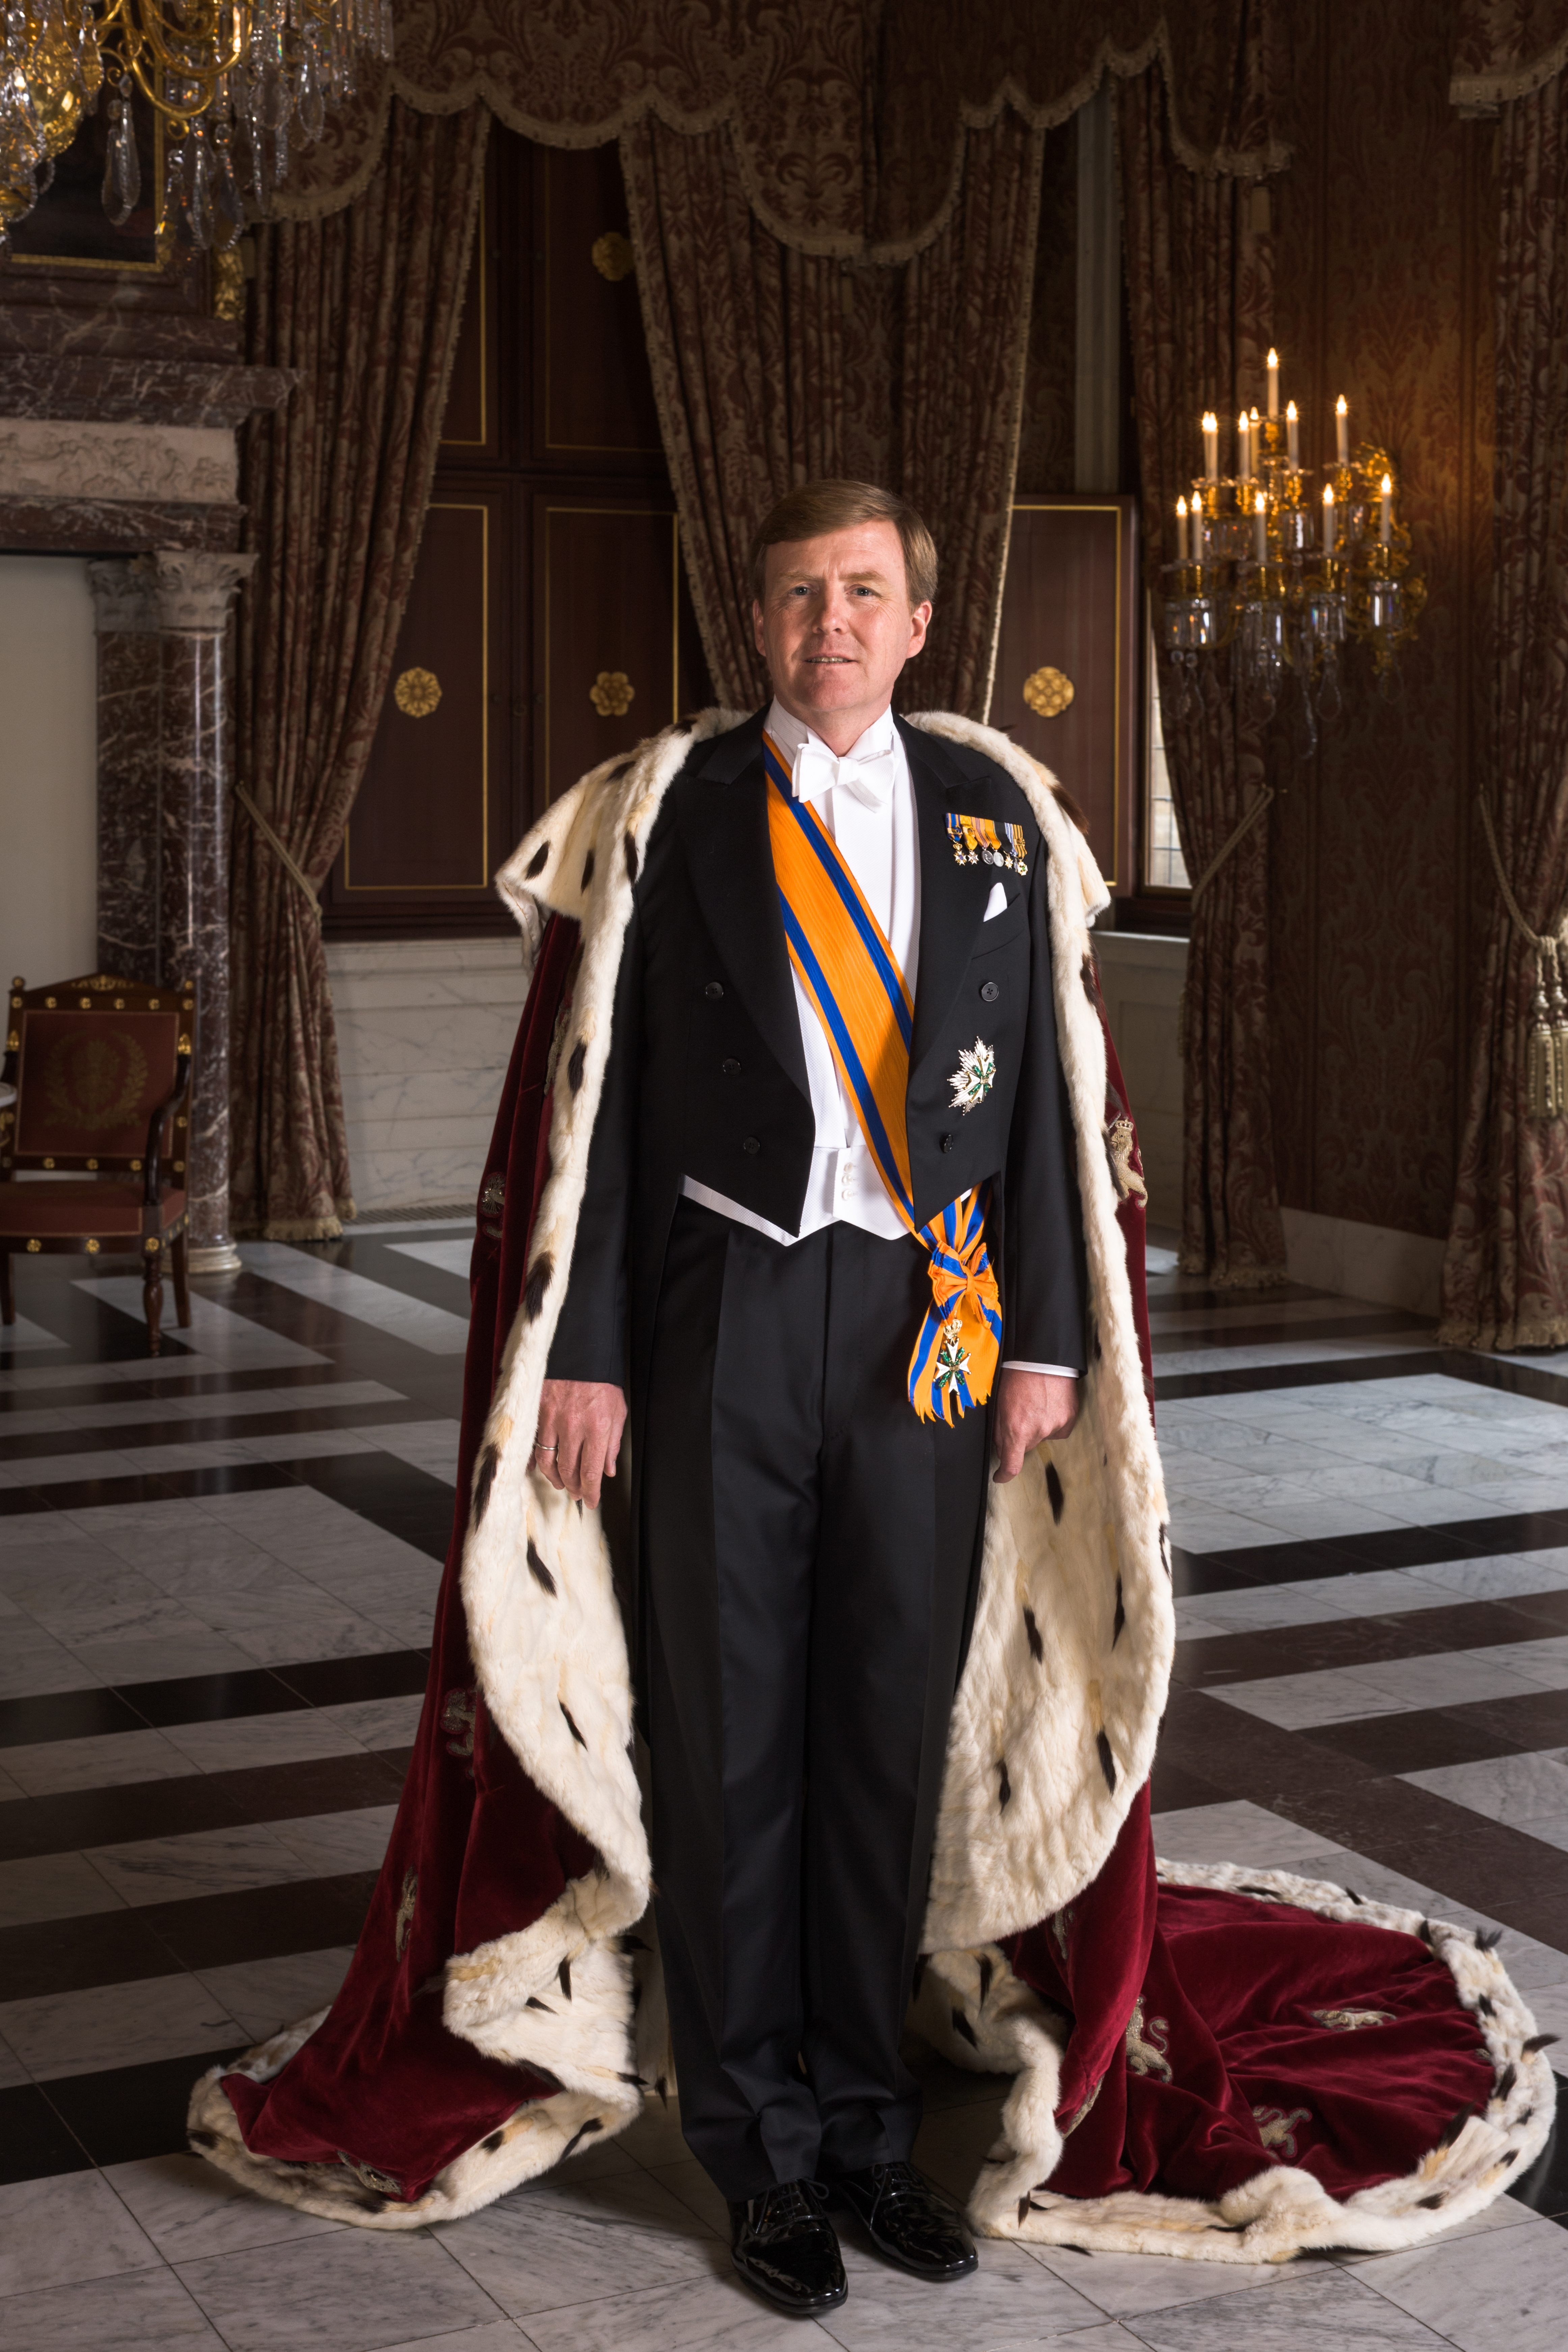 The 53-year old son of father Claus von Amsberg and mother Beatrix of the Netherlands Willem-Alexander Ferdinand in 2020 photo. Willem-Alexander Ferdinand earned a  million dollar salary - leaving the net worth at 220 million in 2020